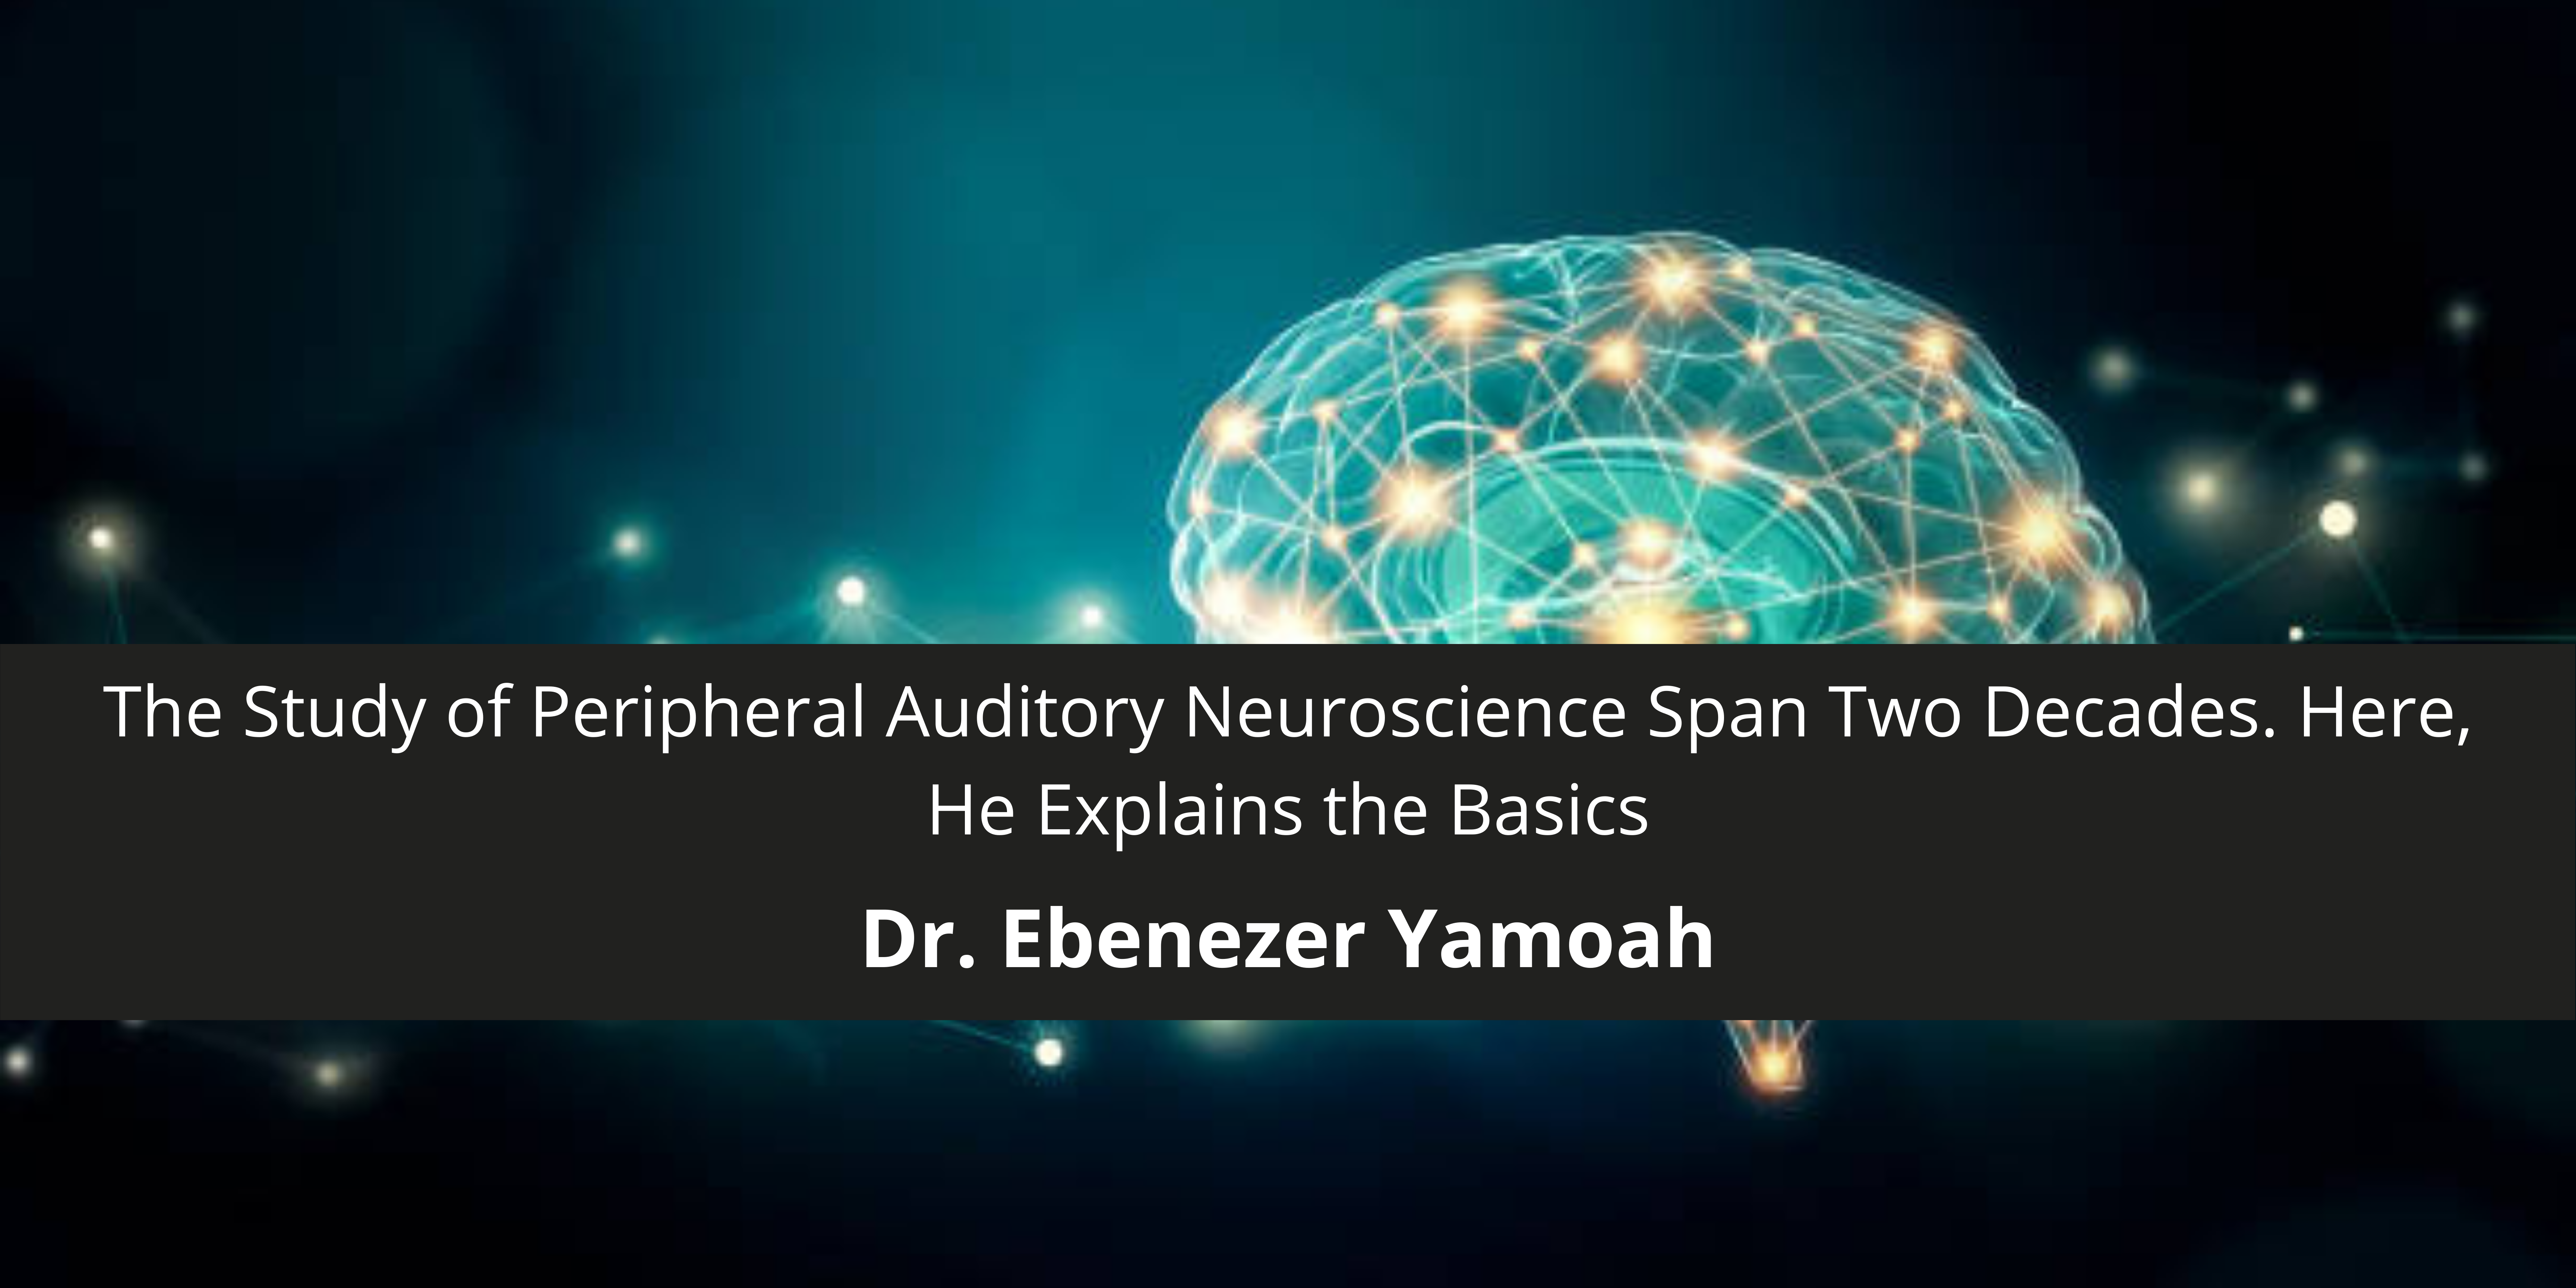 Dr. Ebenezer Yamoah's Contributions To The Study of Peripheral Auditory Neuroscience Span Two Decades. Here, He Explains the Basics